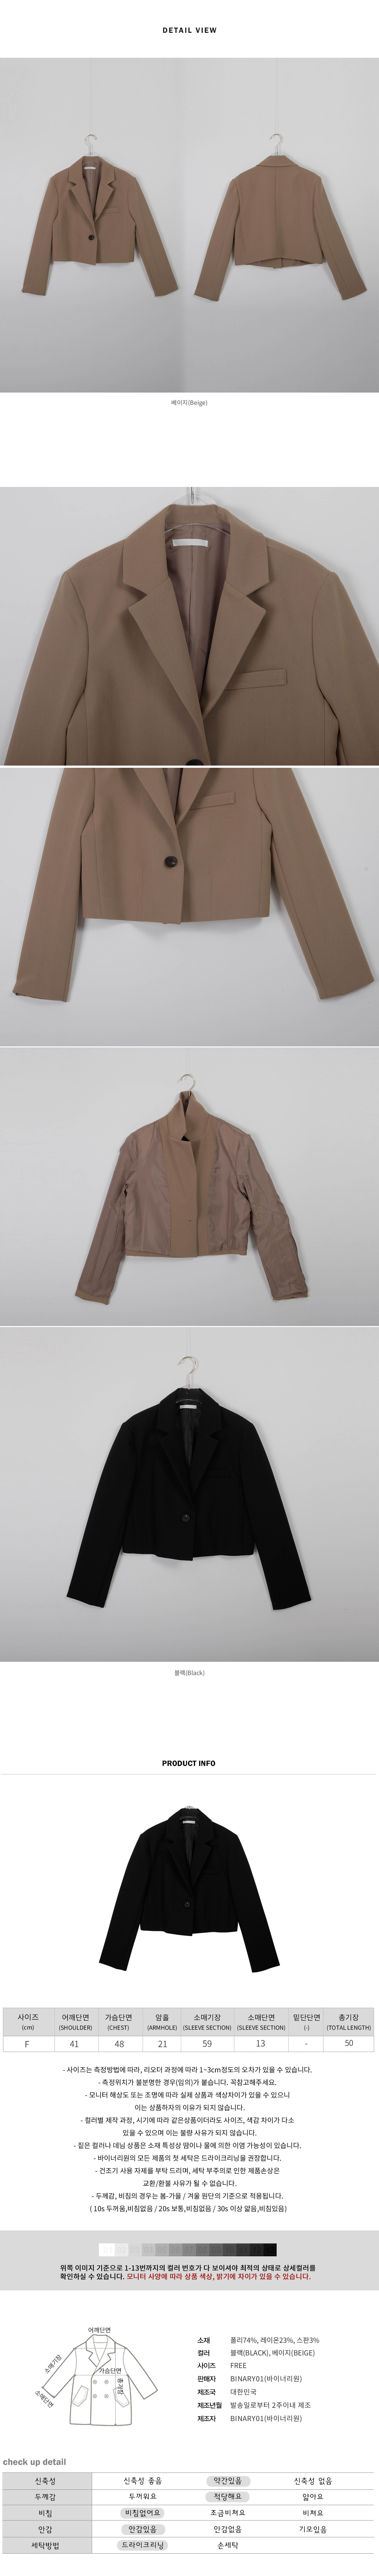 Cropped tany single jacket